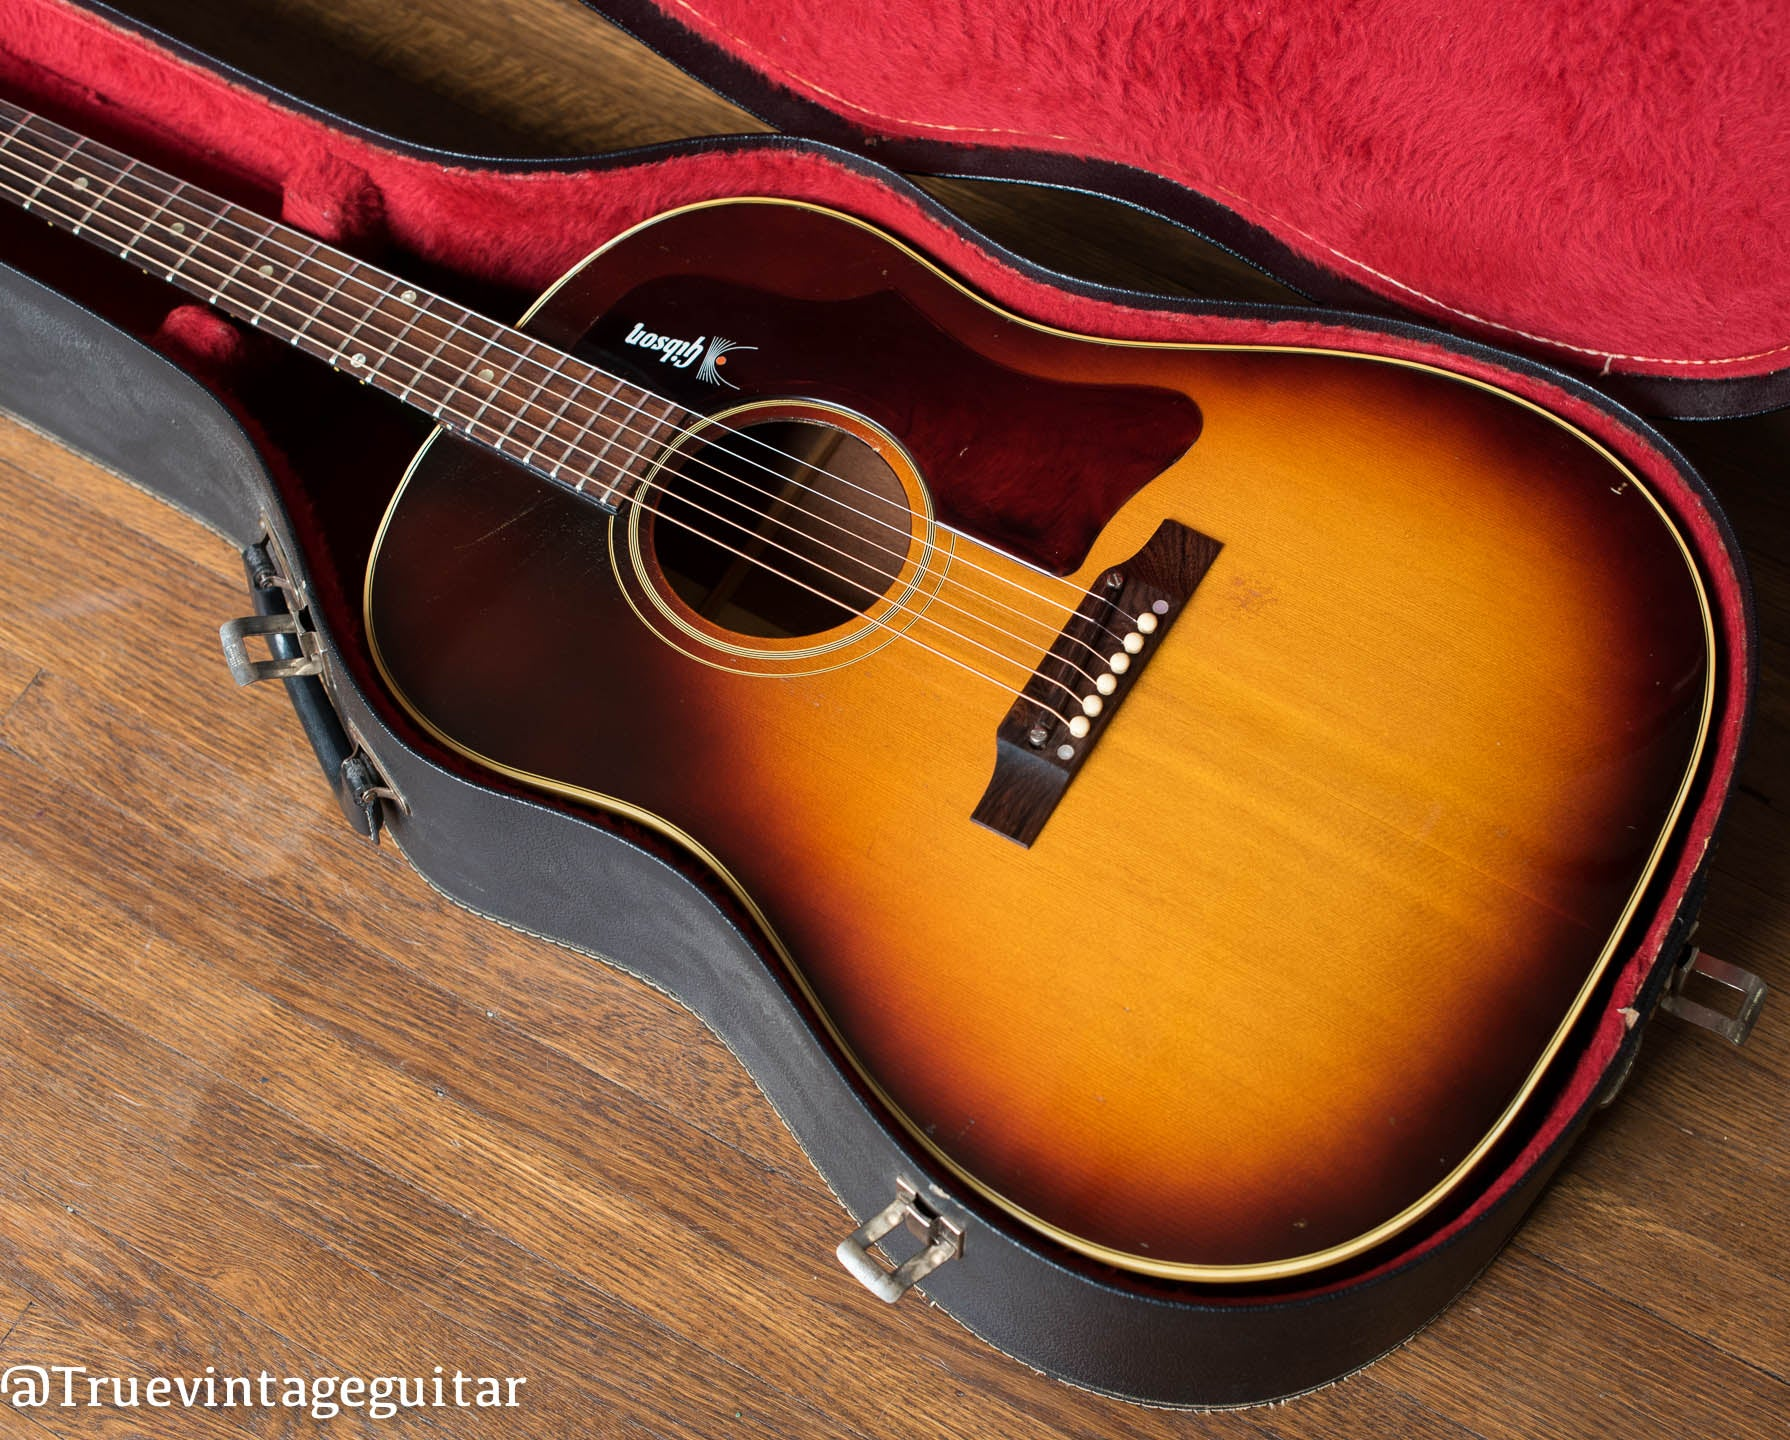 Vintage Gibson acoustic guitar J-45 1968